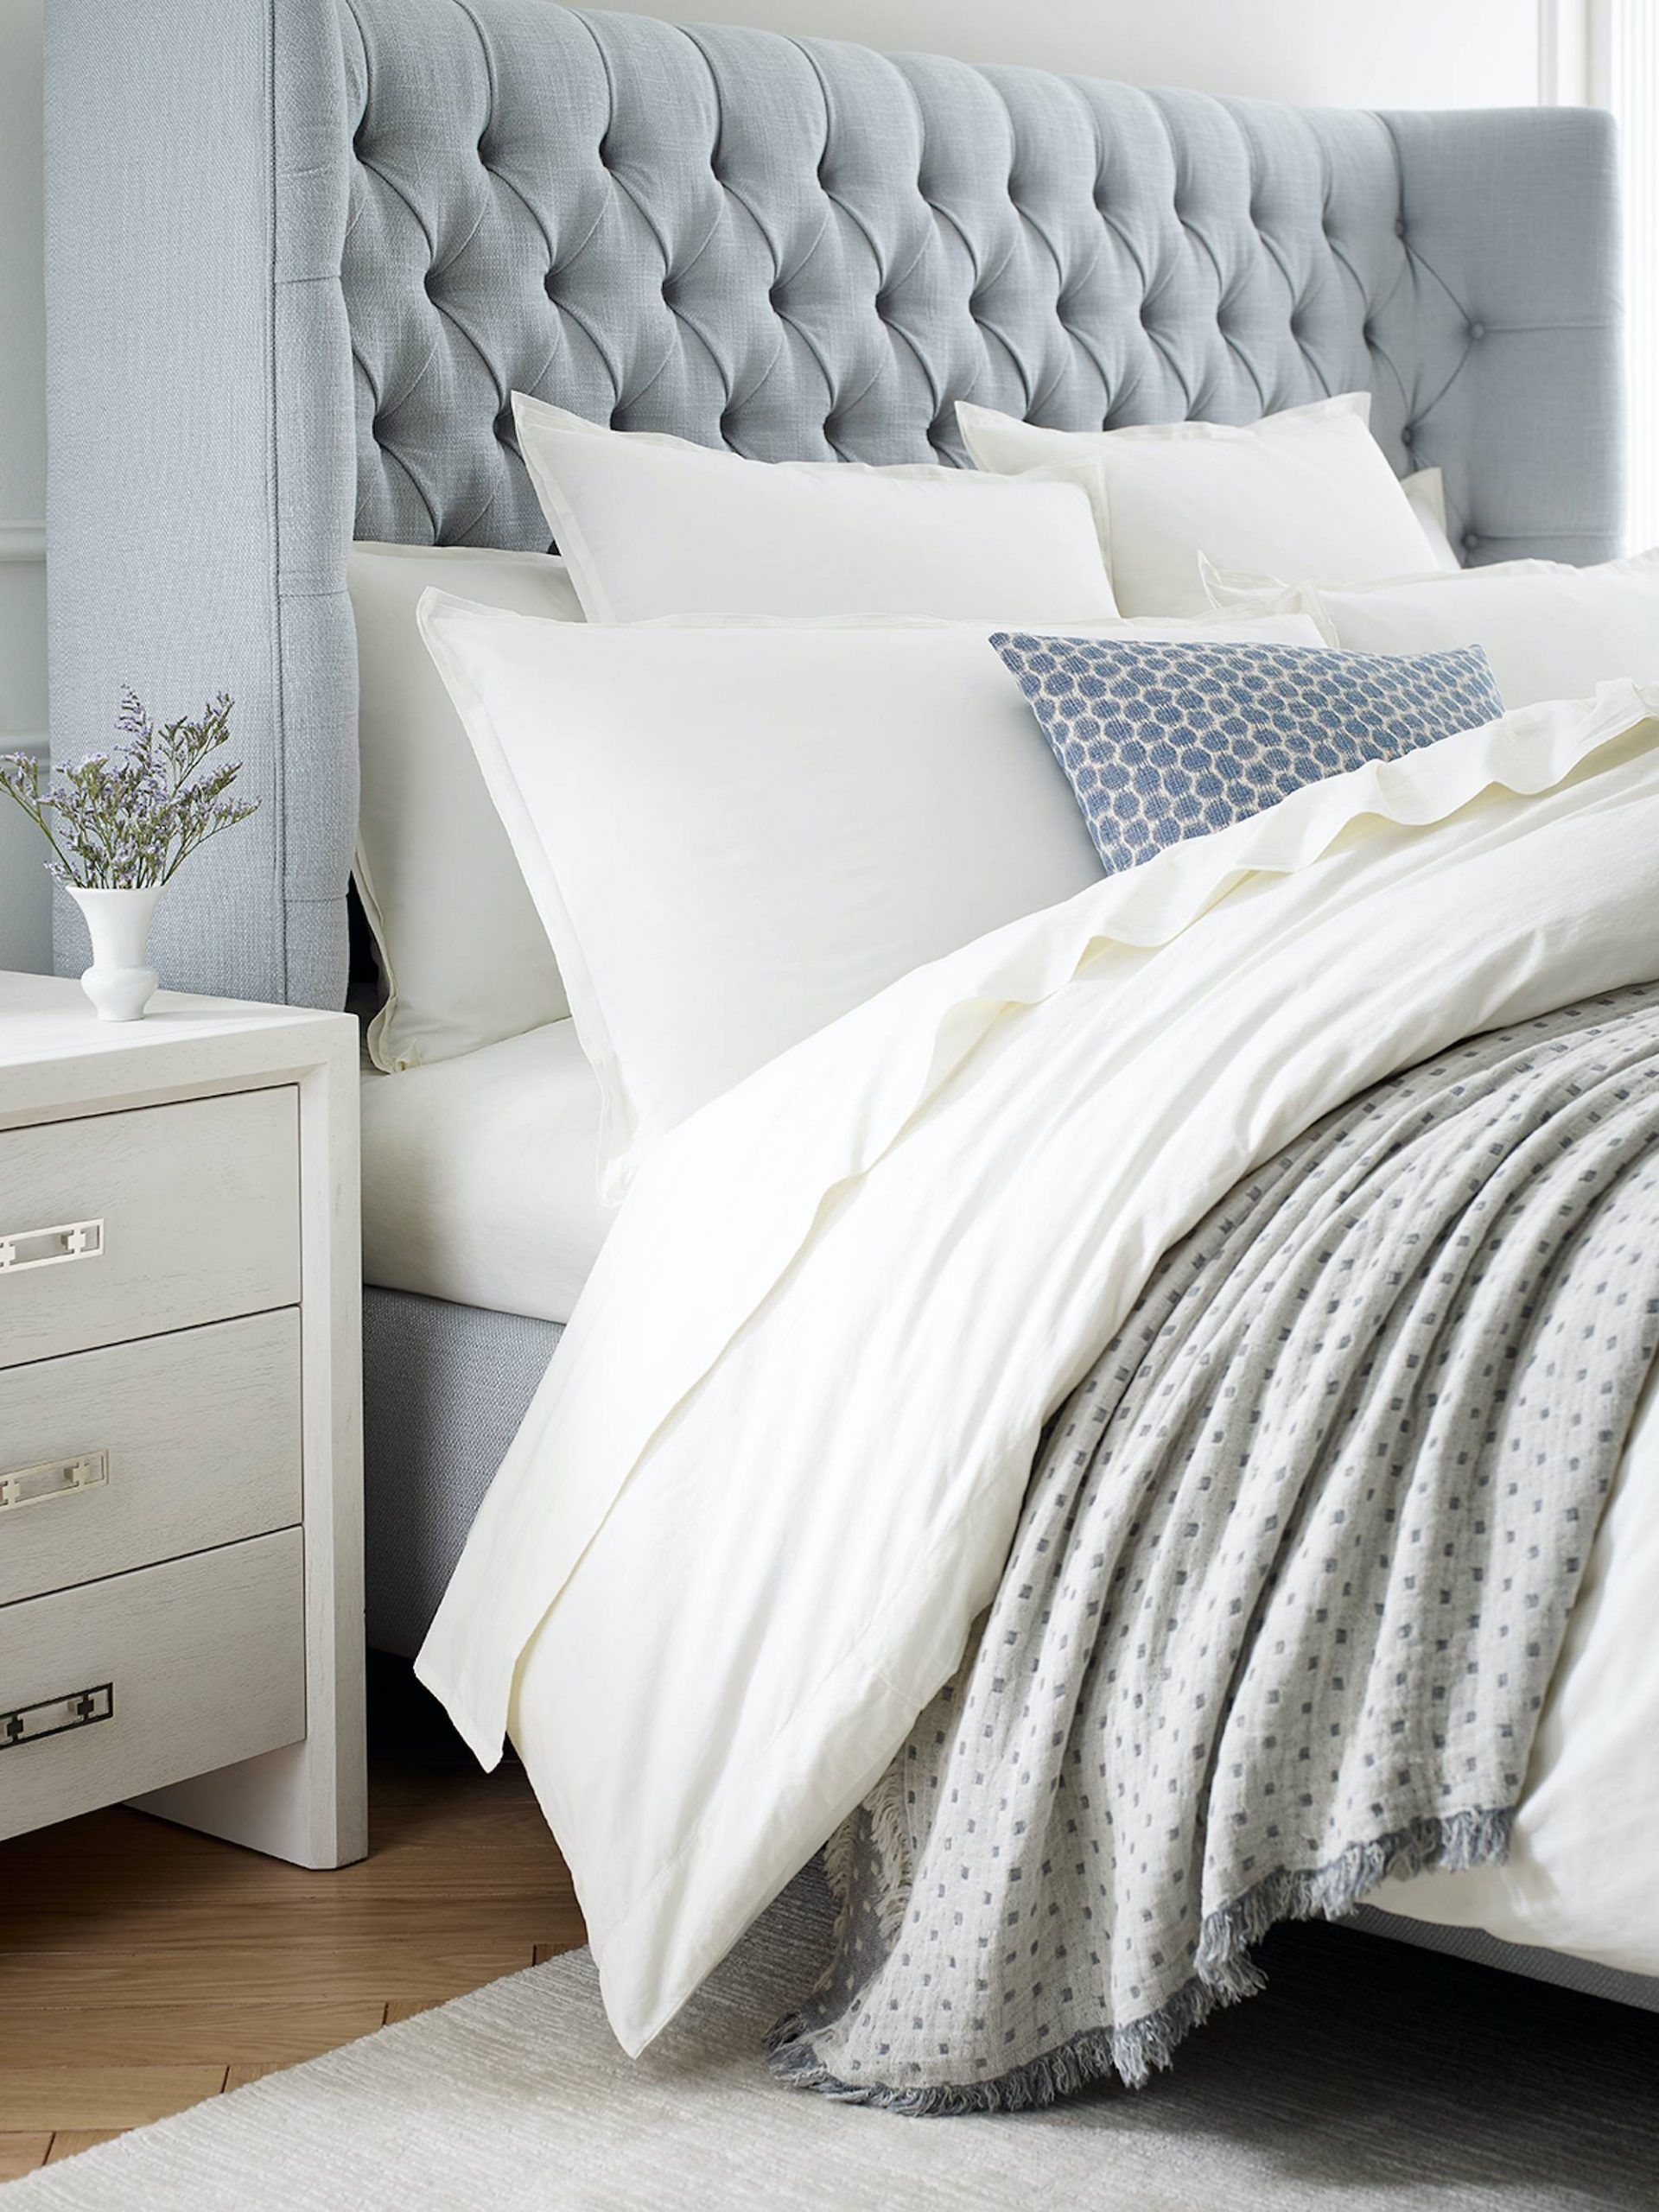 Giveaway: Enter to Win a Spring Bedroom Refresh from Mitchell Gold + Bob Williams